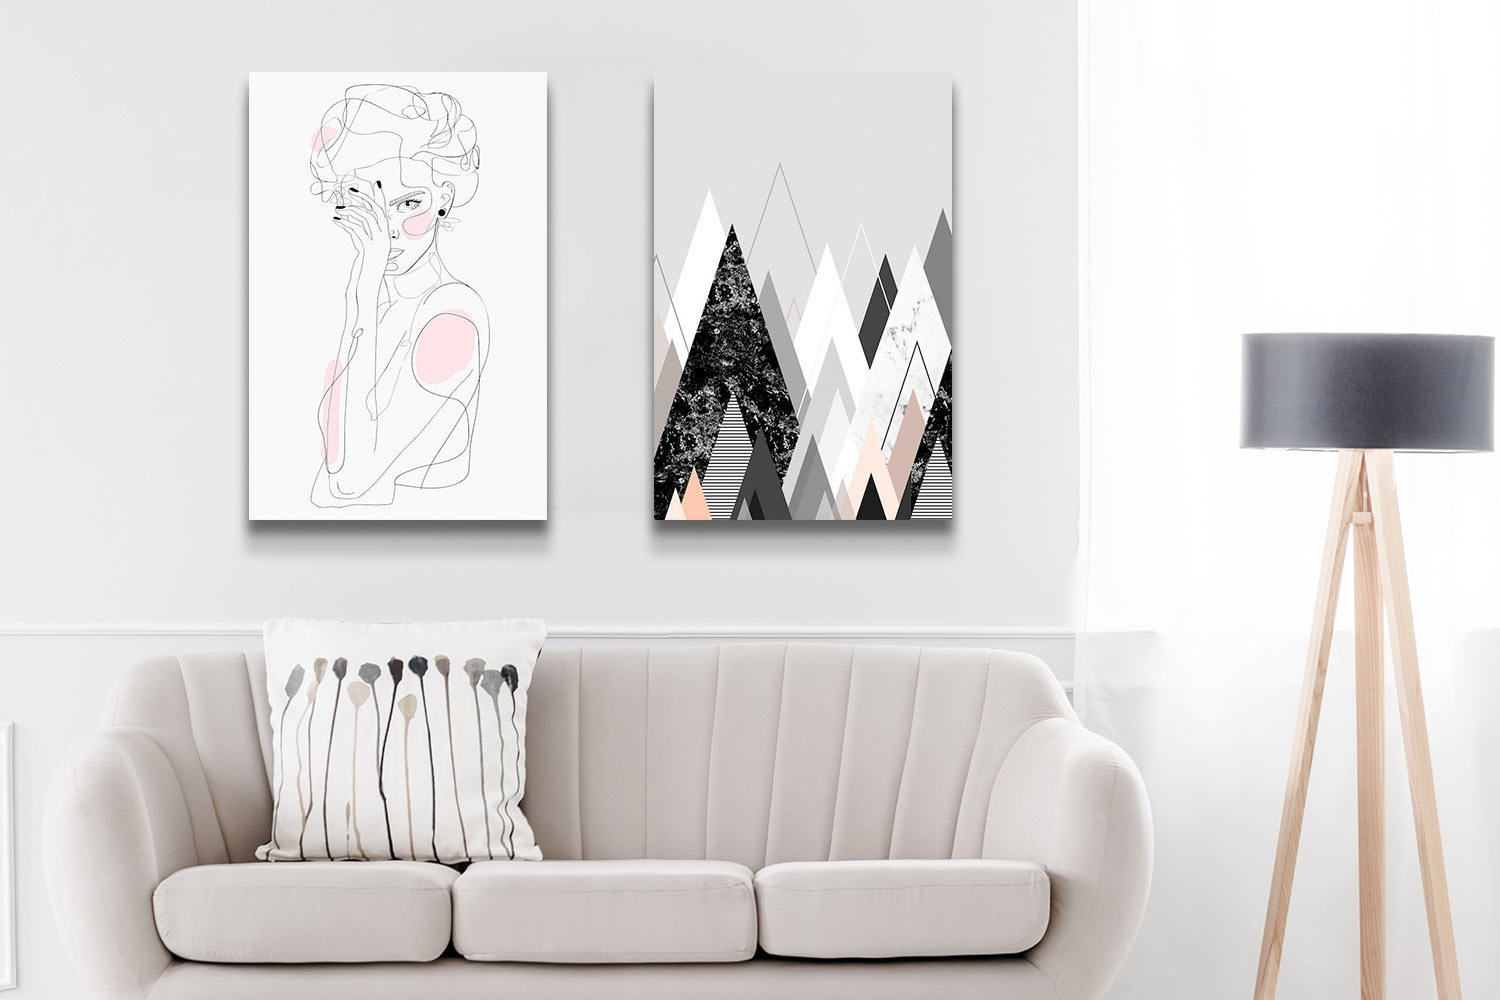 """A greige living room with two minimalist, neutral canvas art prints above the sofa: """"Freaq Sista"""" by Nettsch and """"Graphic CXXIV"""" by Marieke Böhmer"""